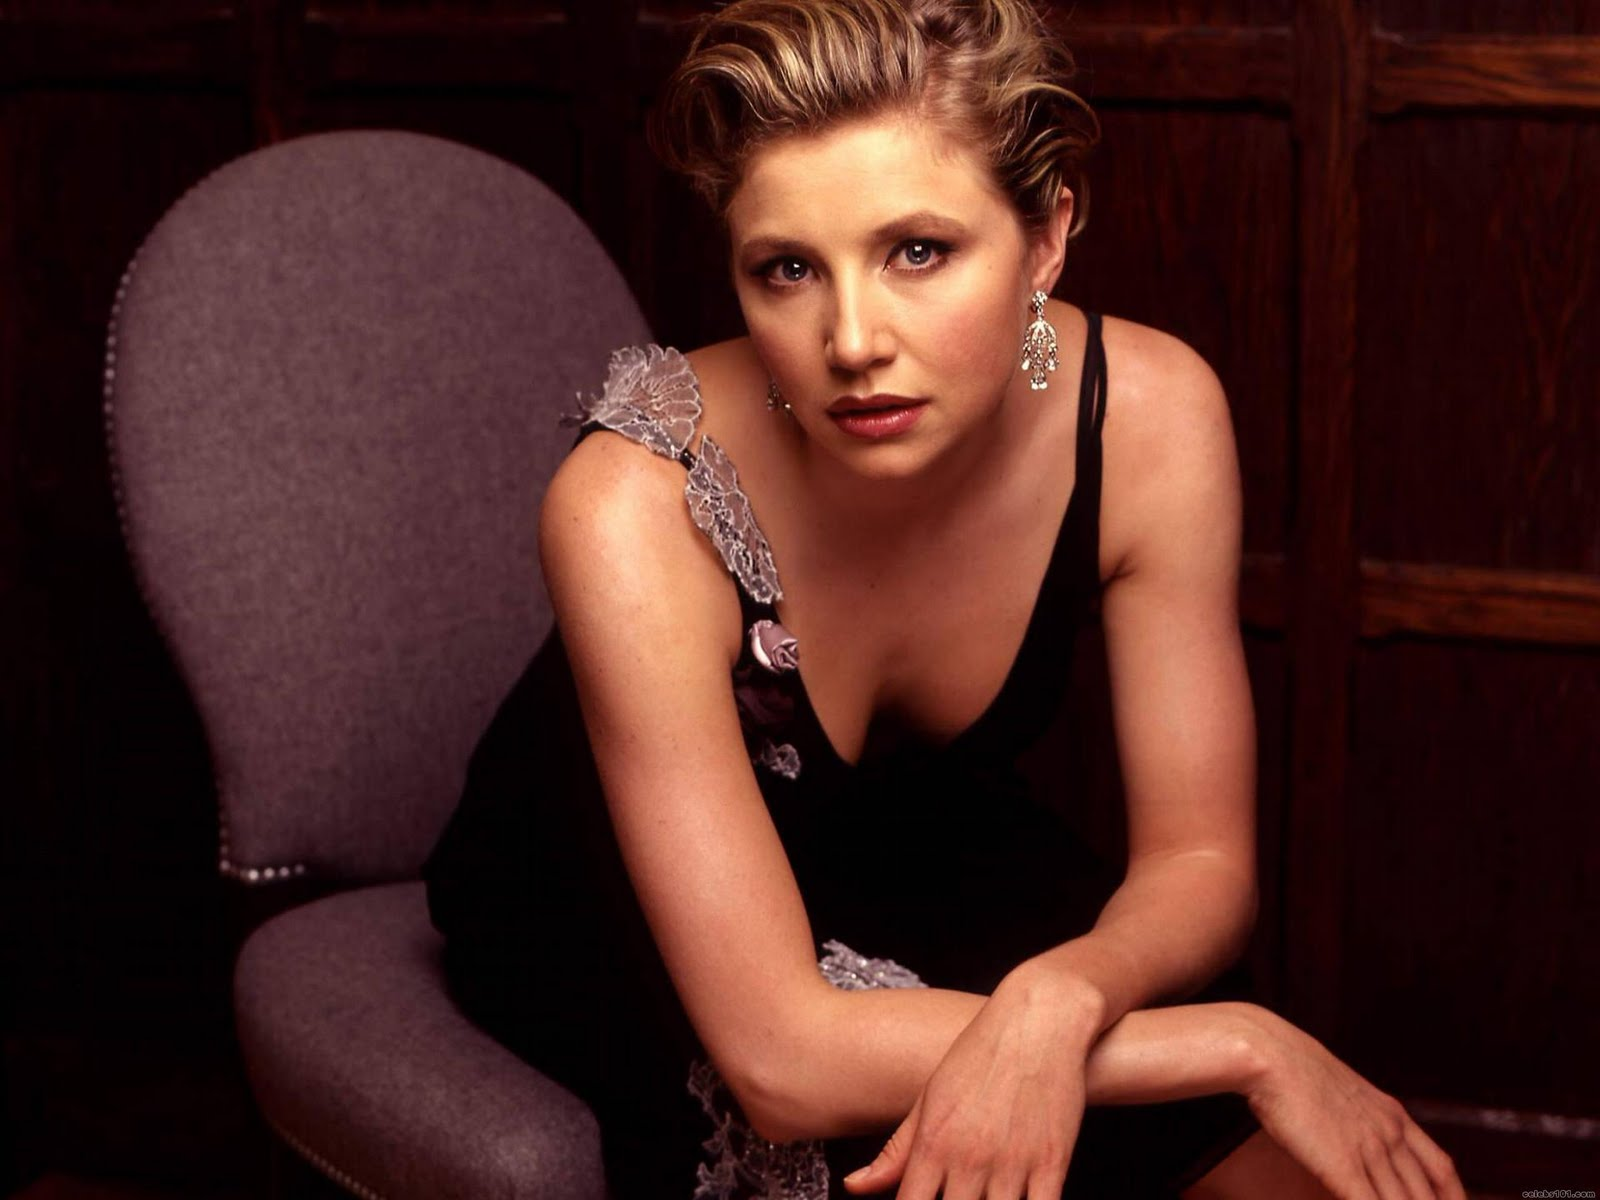 image Sarah chalke chaos theory sexy lingerie